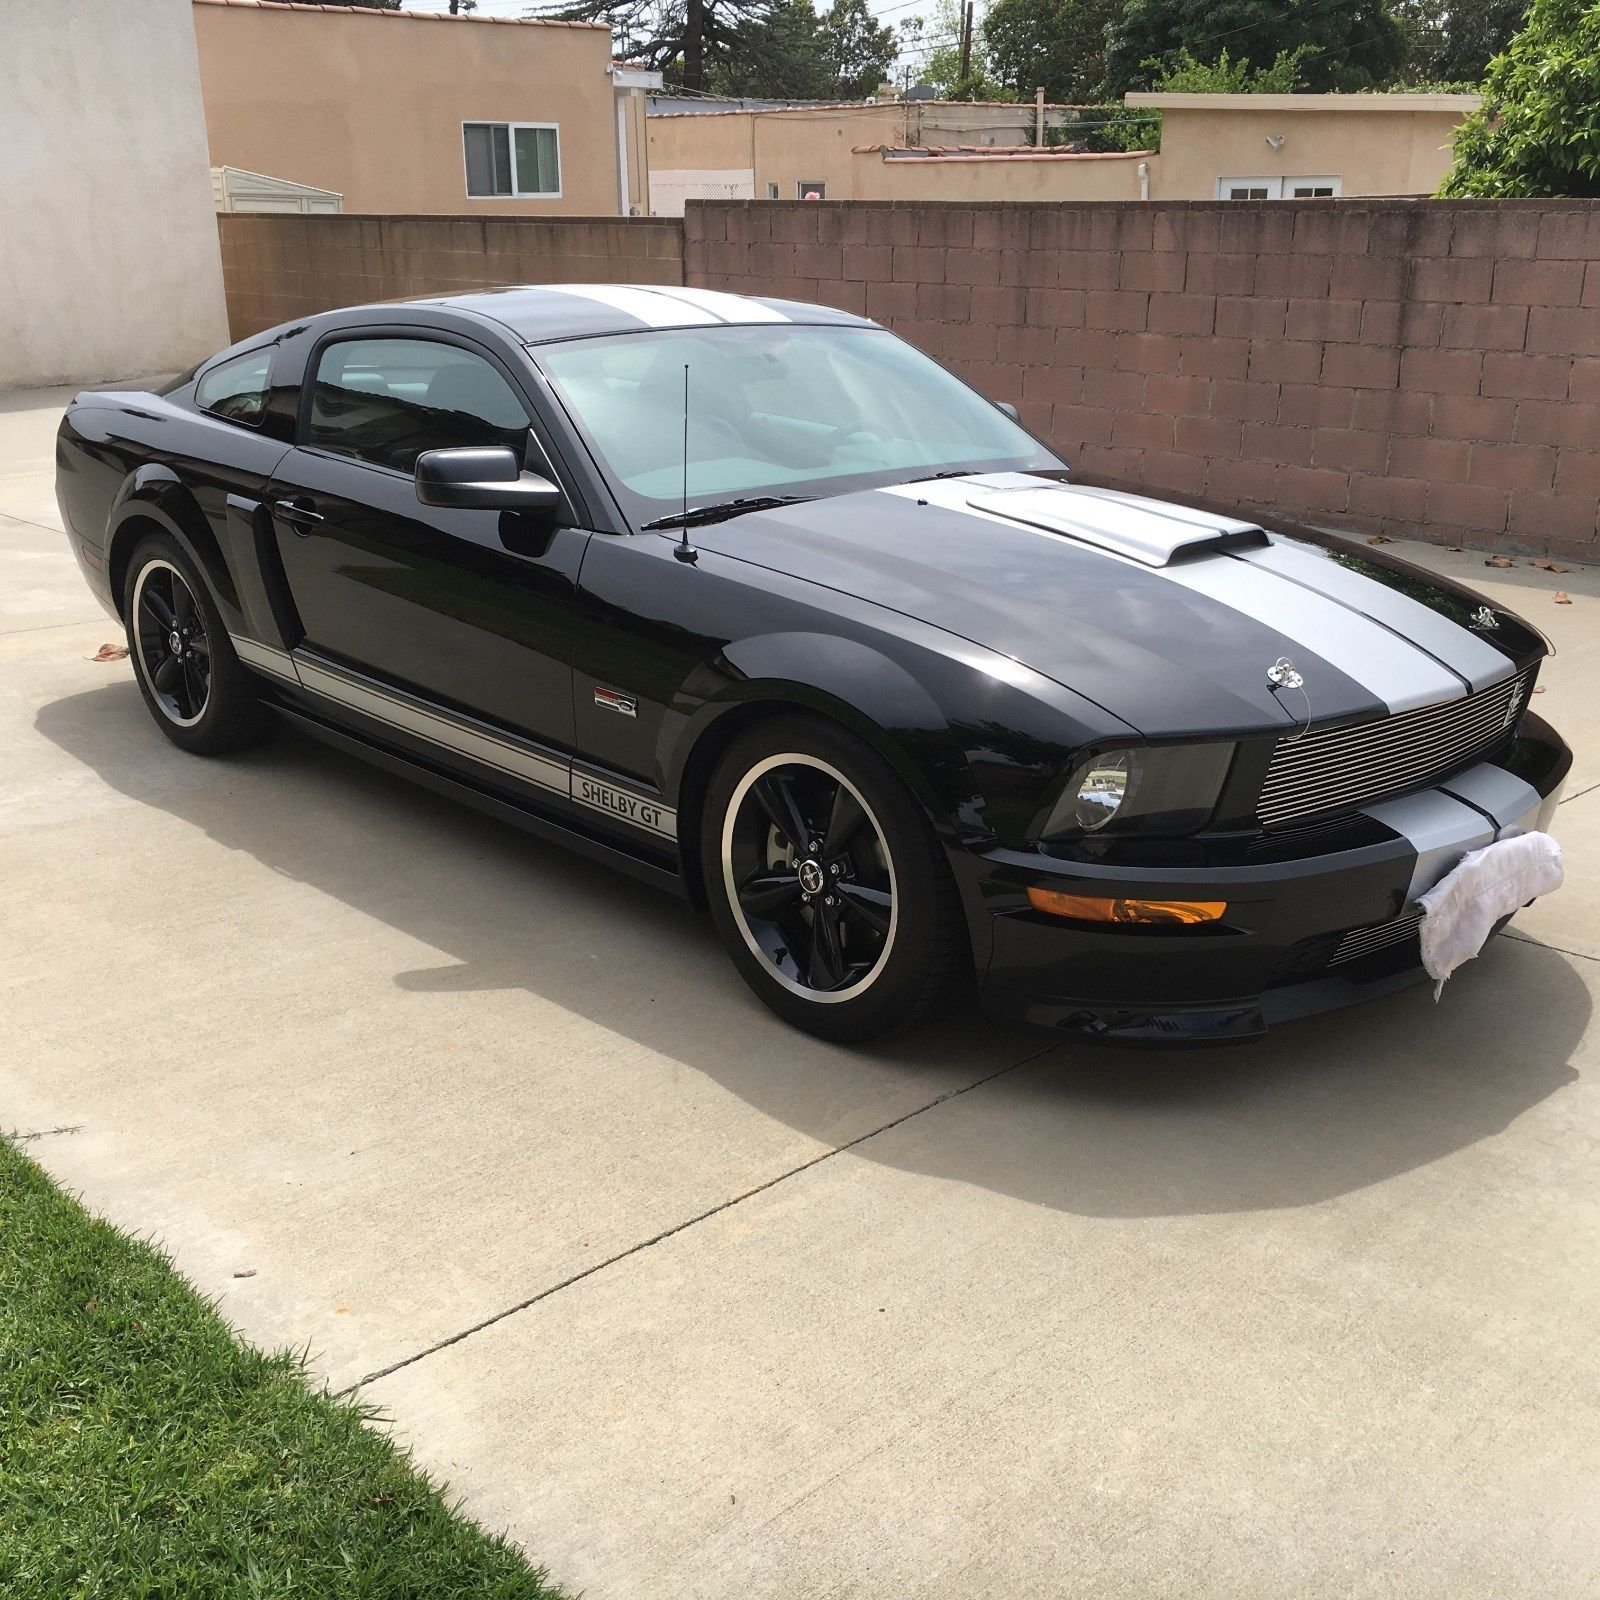 Amazing 2007 ford mustang shelby gt 2007 shelby mustang gt only 24500 miles 2018 2019